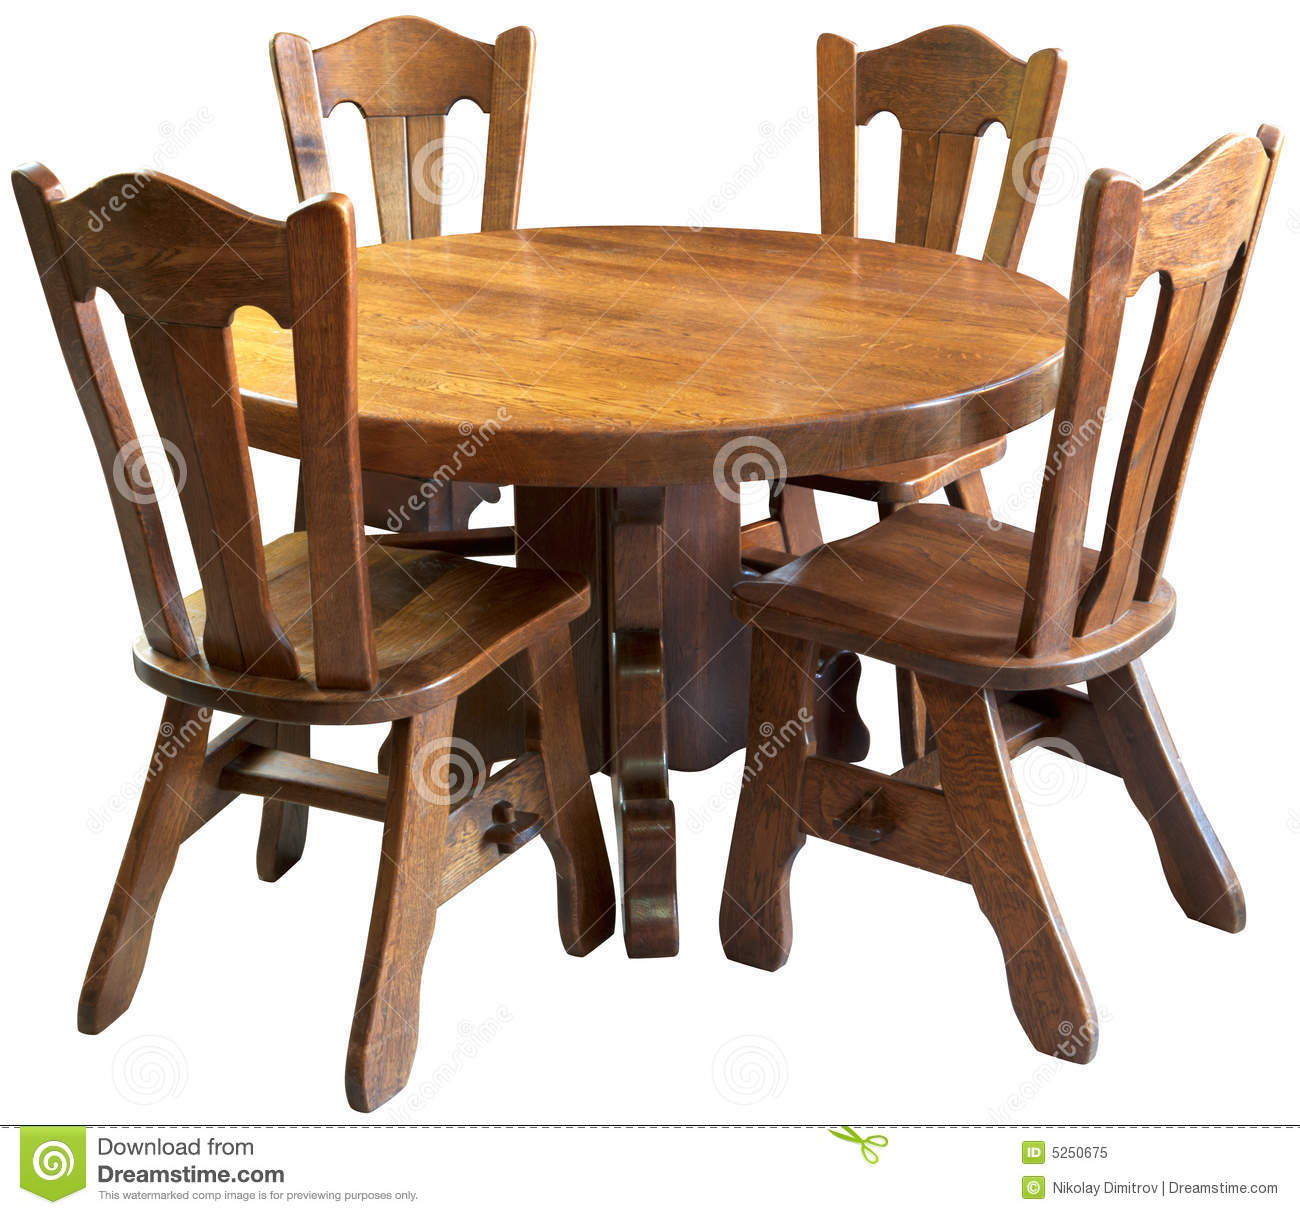 solid wood kitchen table set isolated royalty free stock